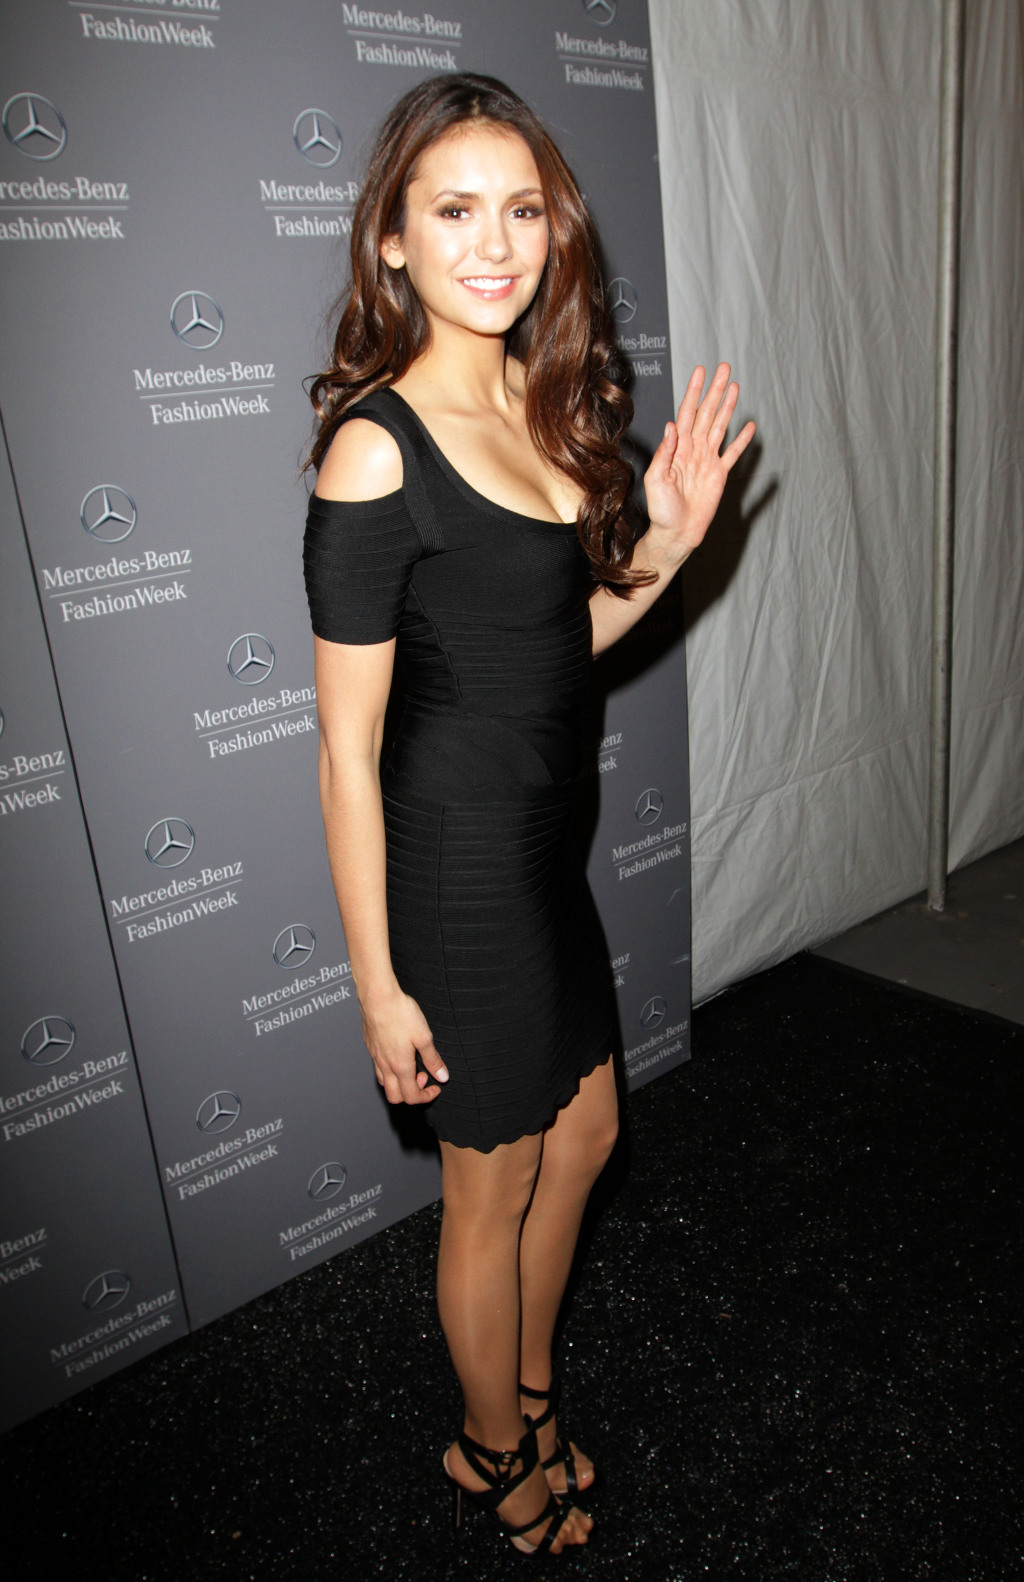 Nina Dobrev Dress Herve Leger Black Strapless Dress